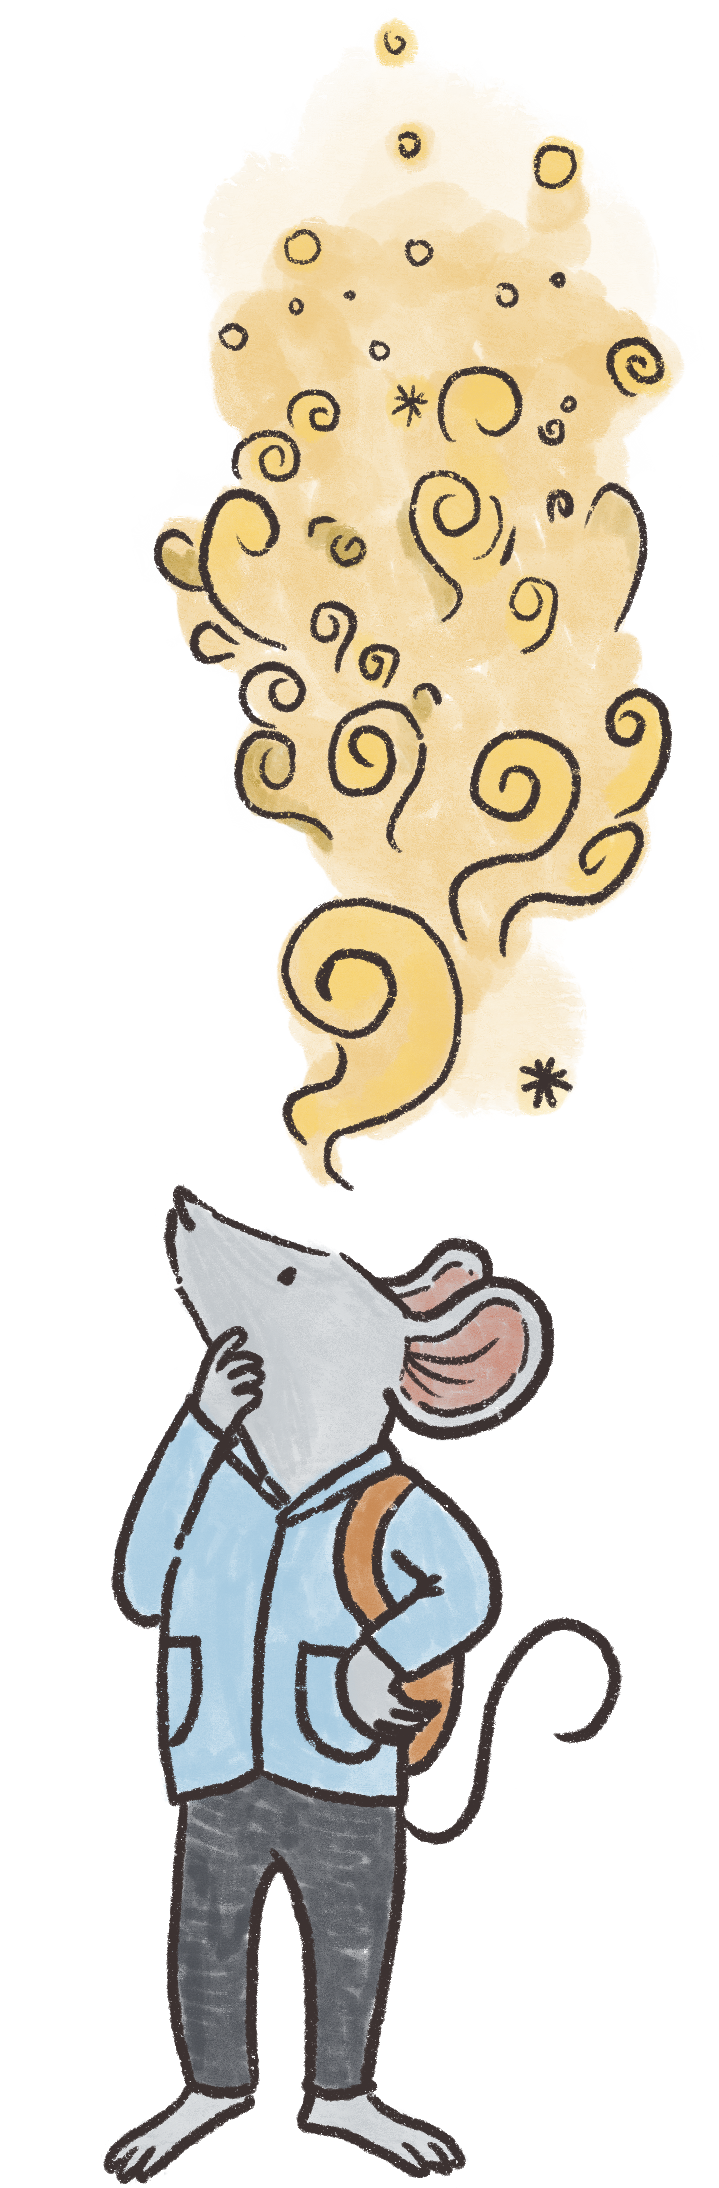 mouse wondering